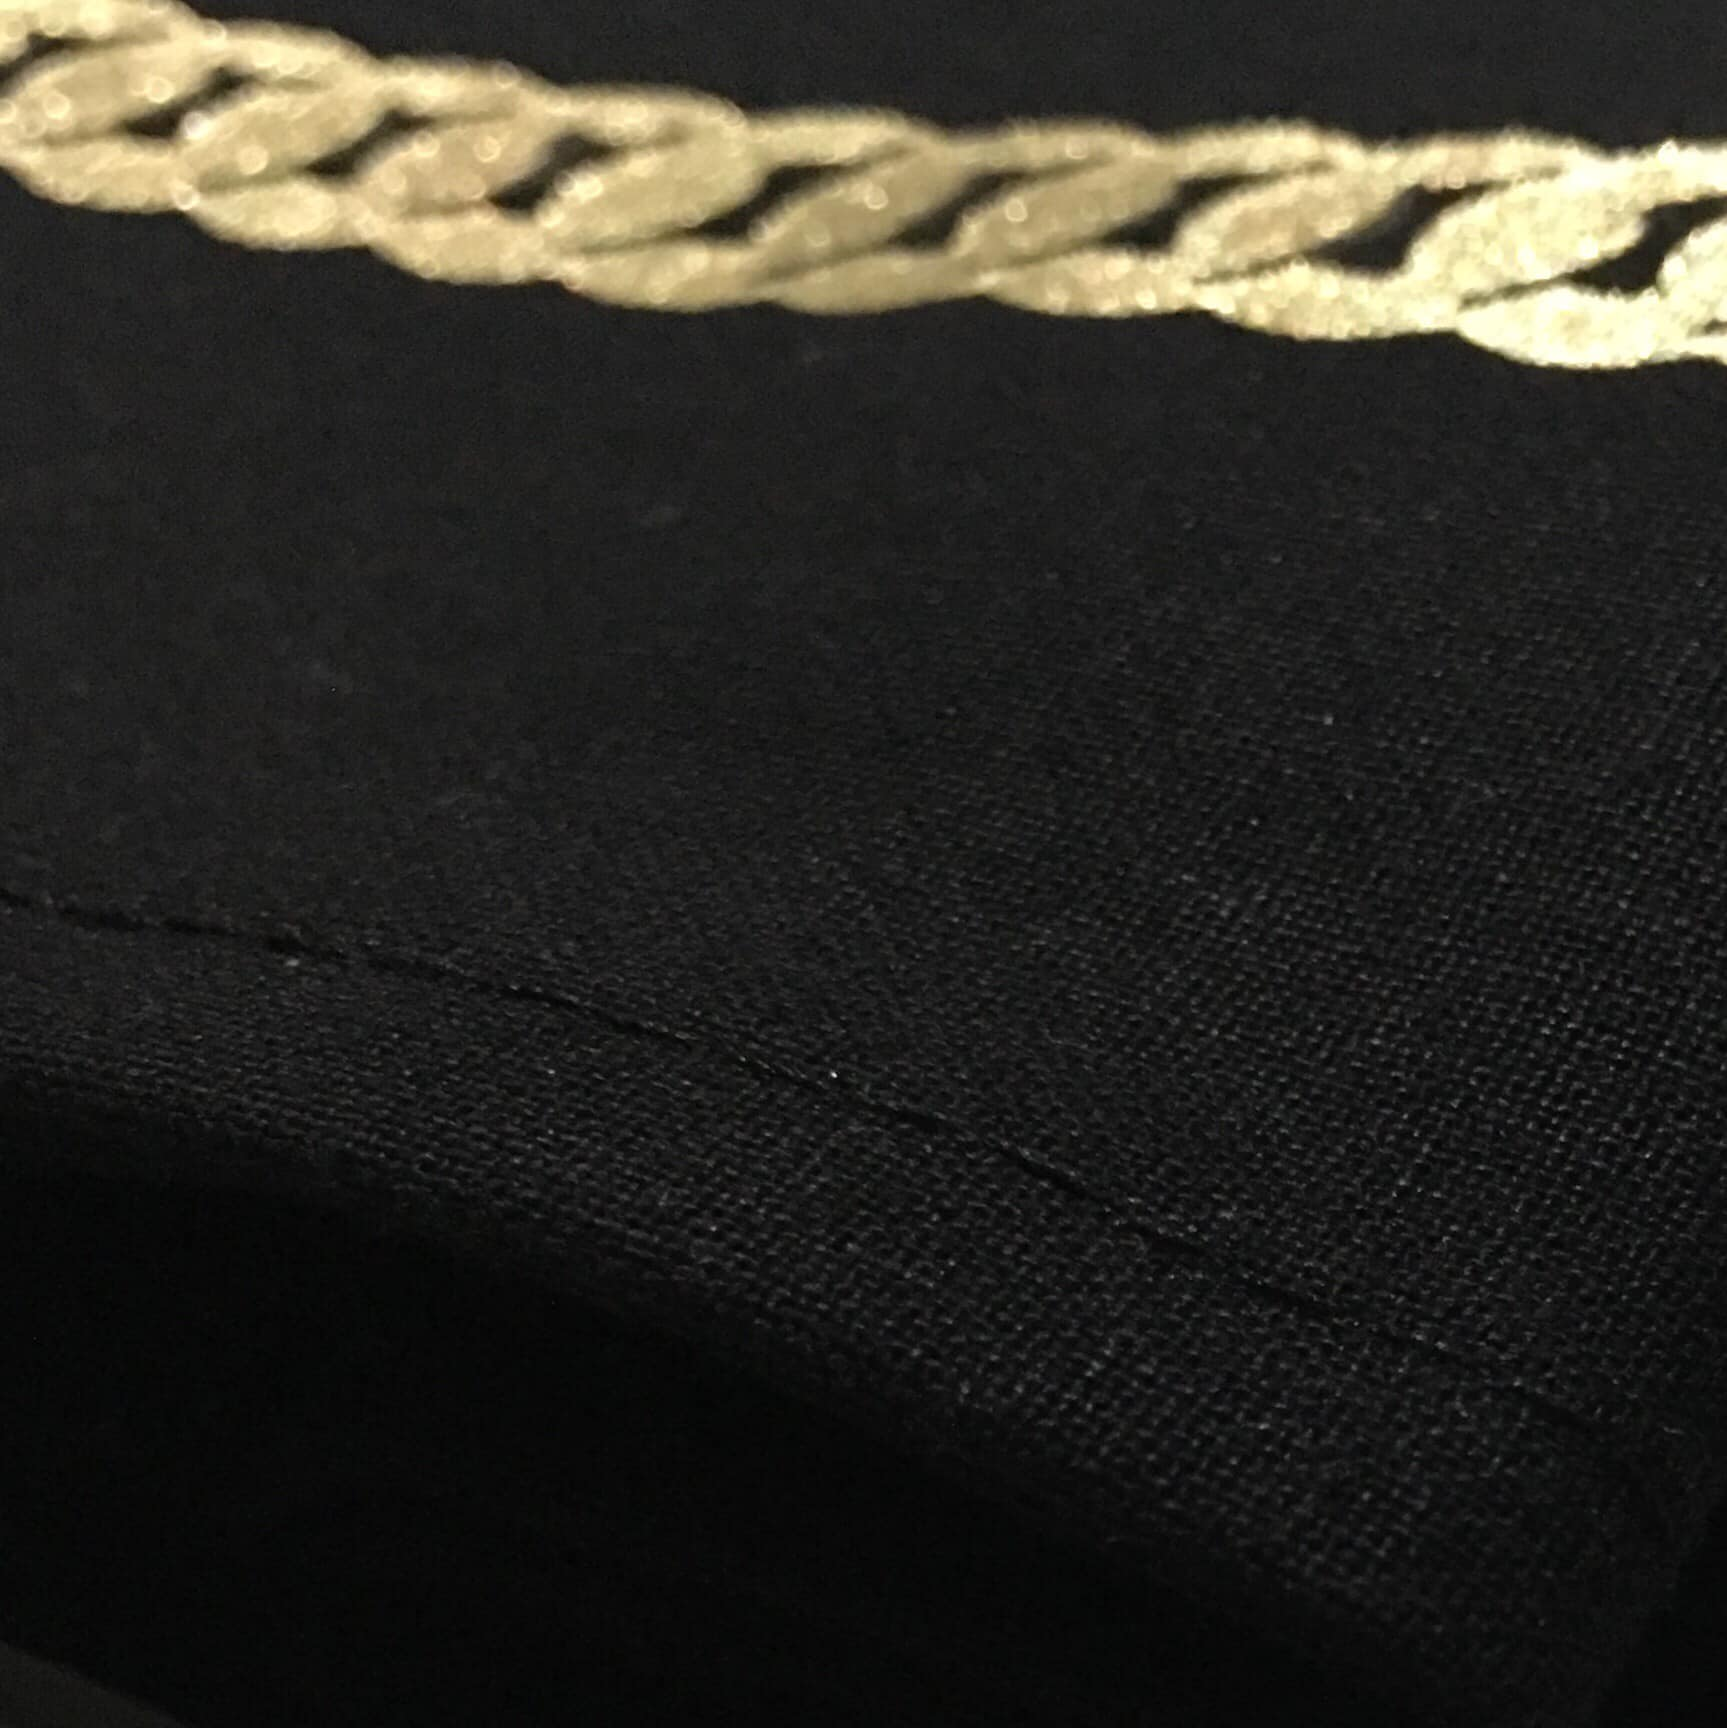 GOLD CHAIN NECKLACE BANDANA